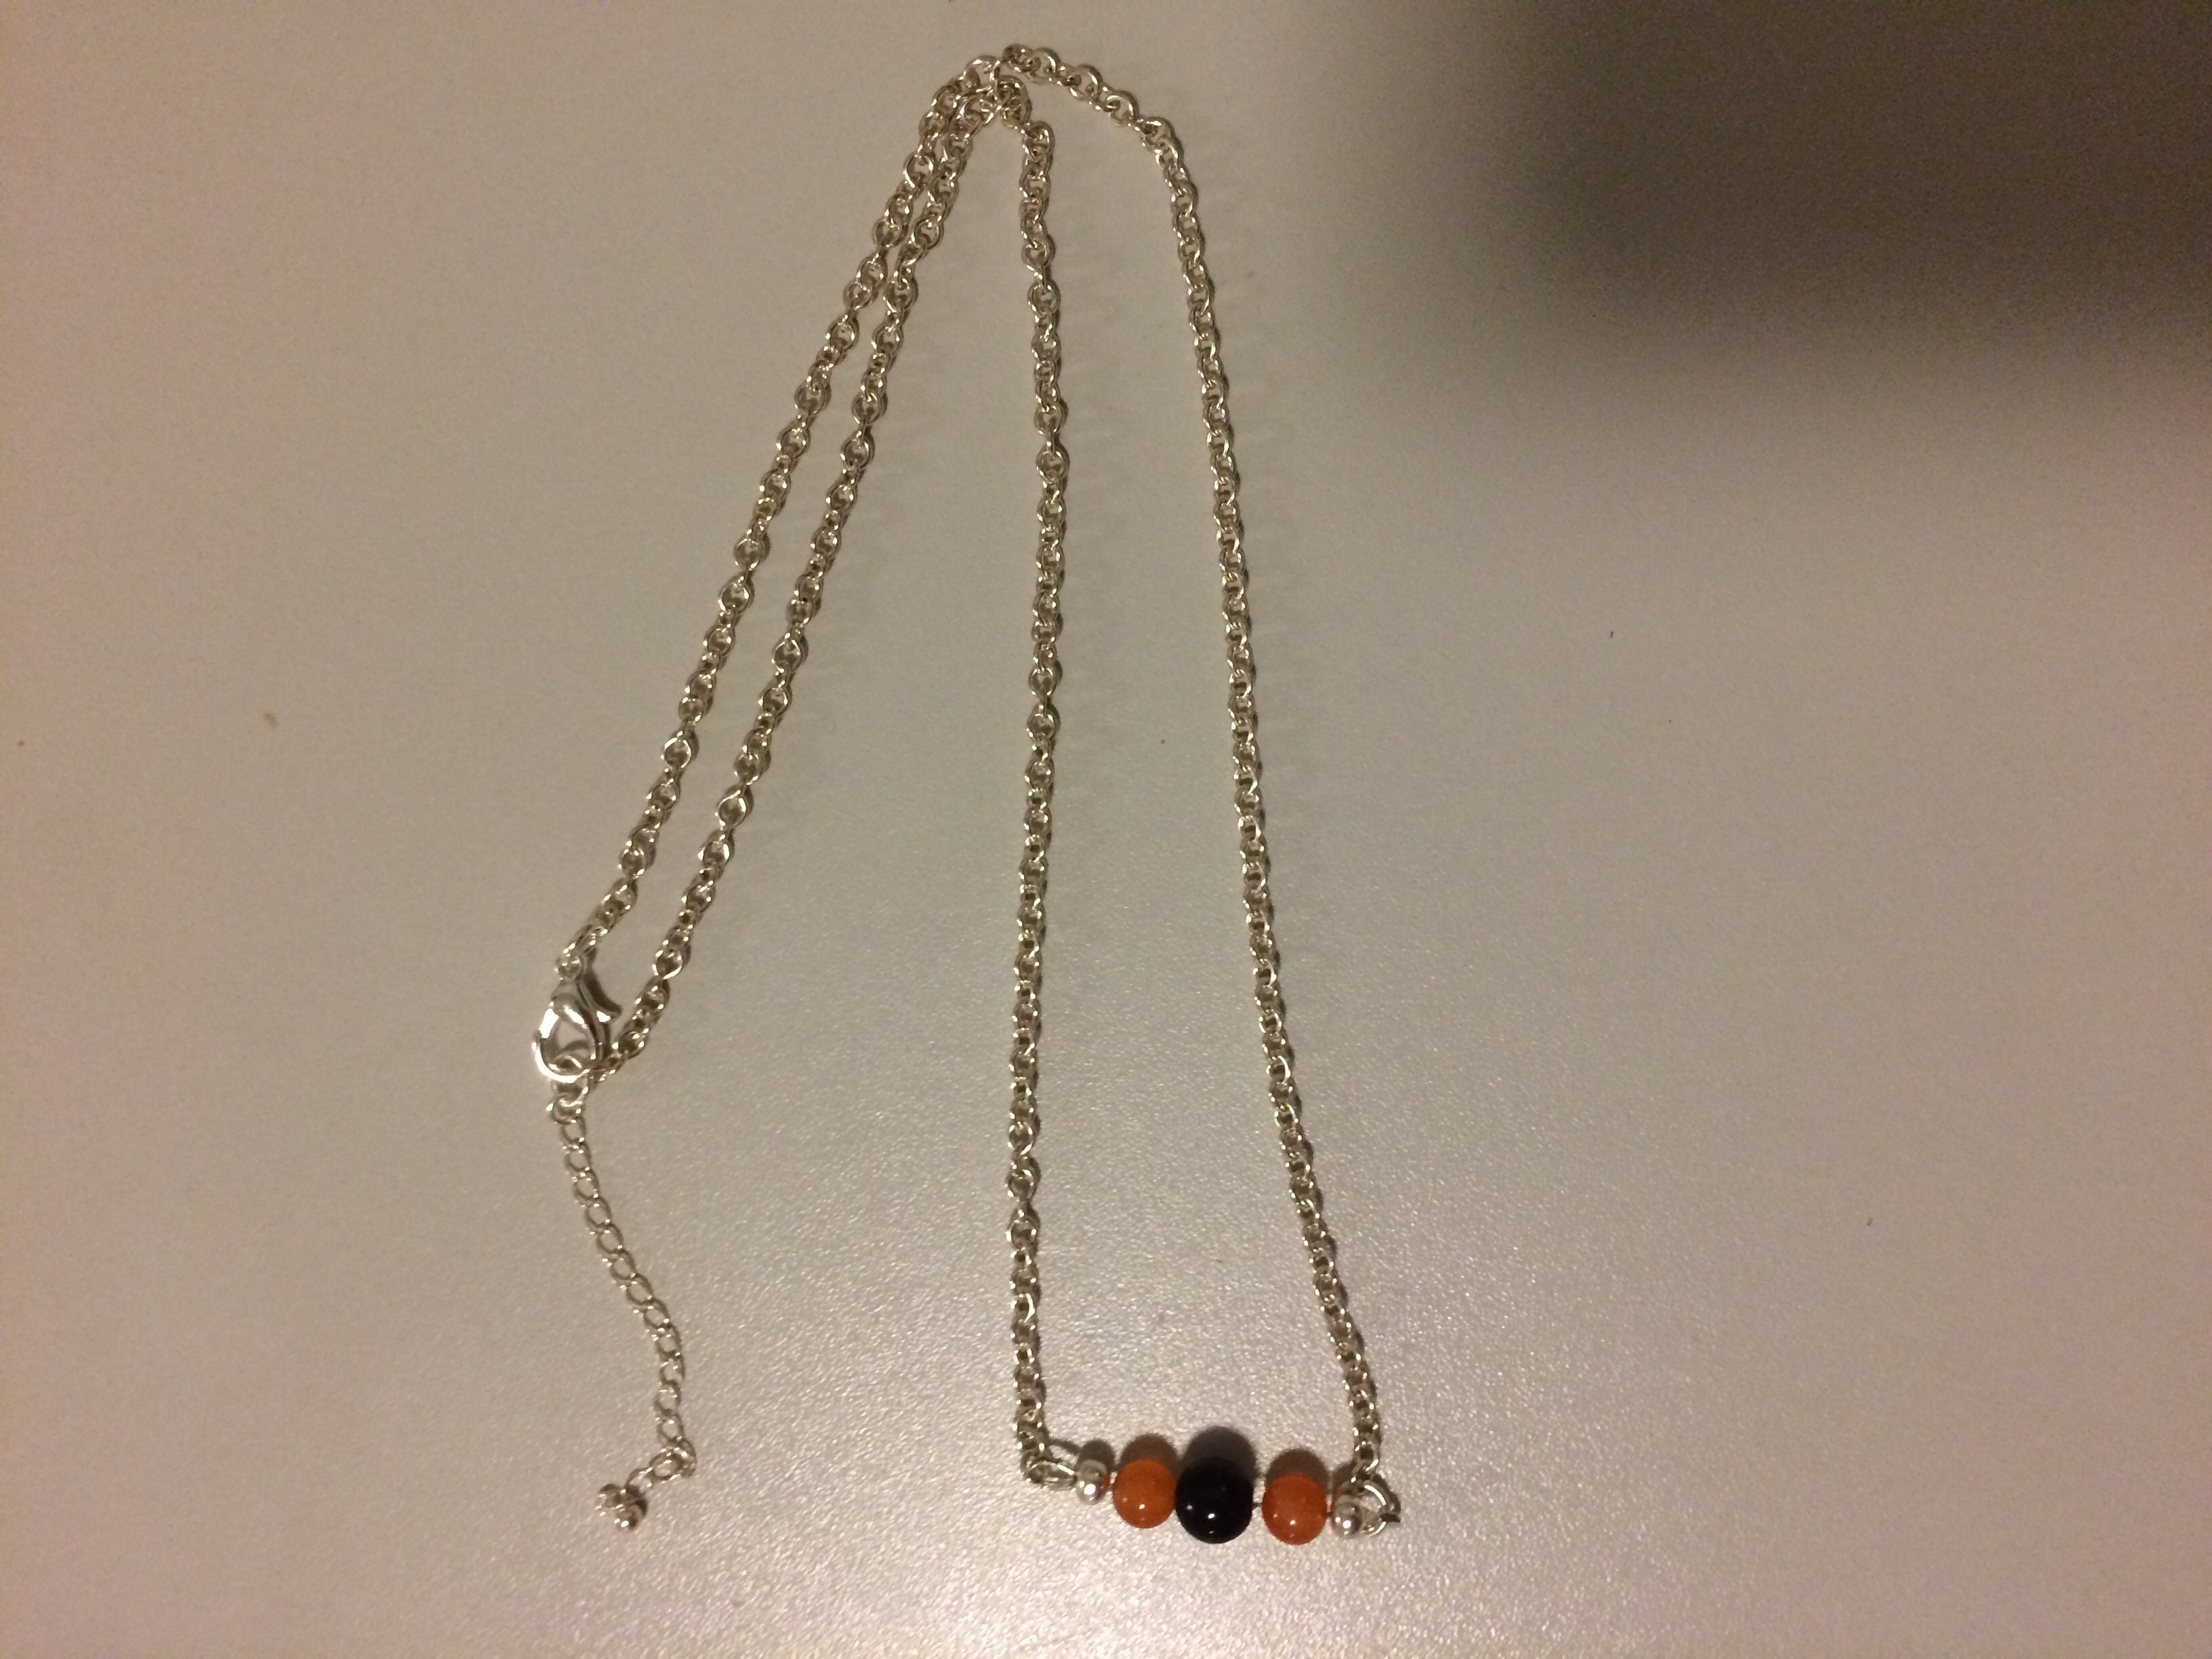 Amethyst and Carnelian Necklace with Sterling Silver adjustable Chain